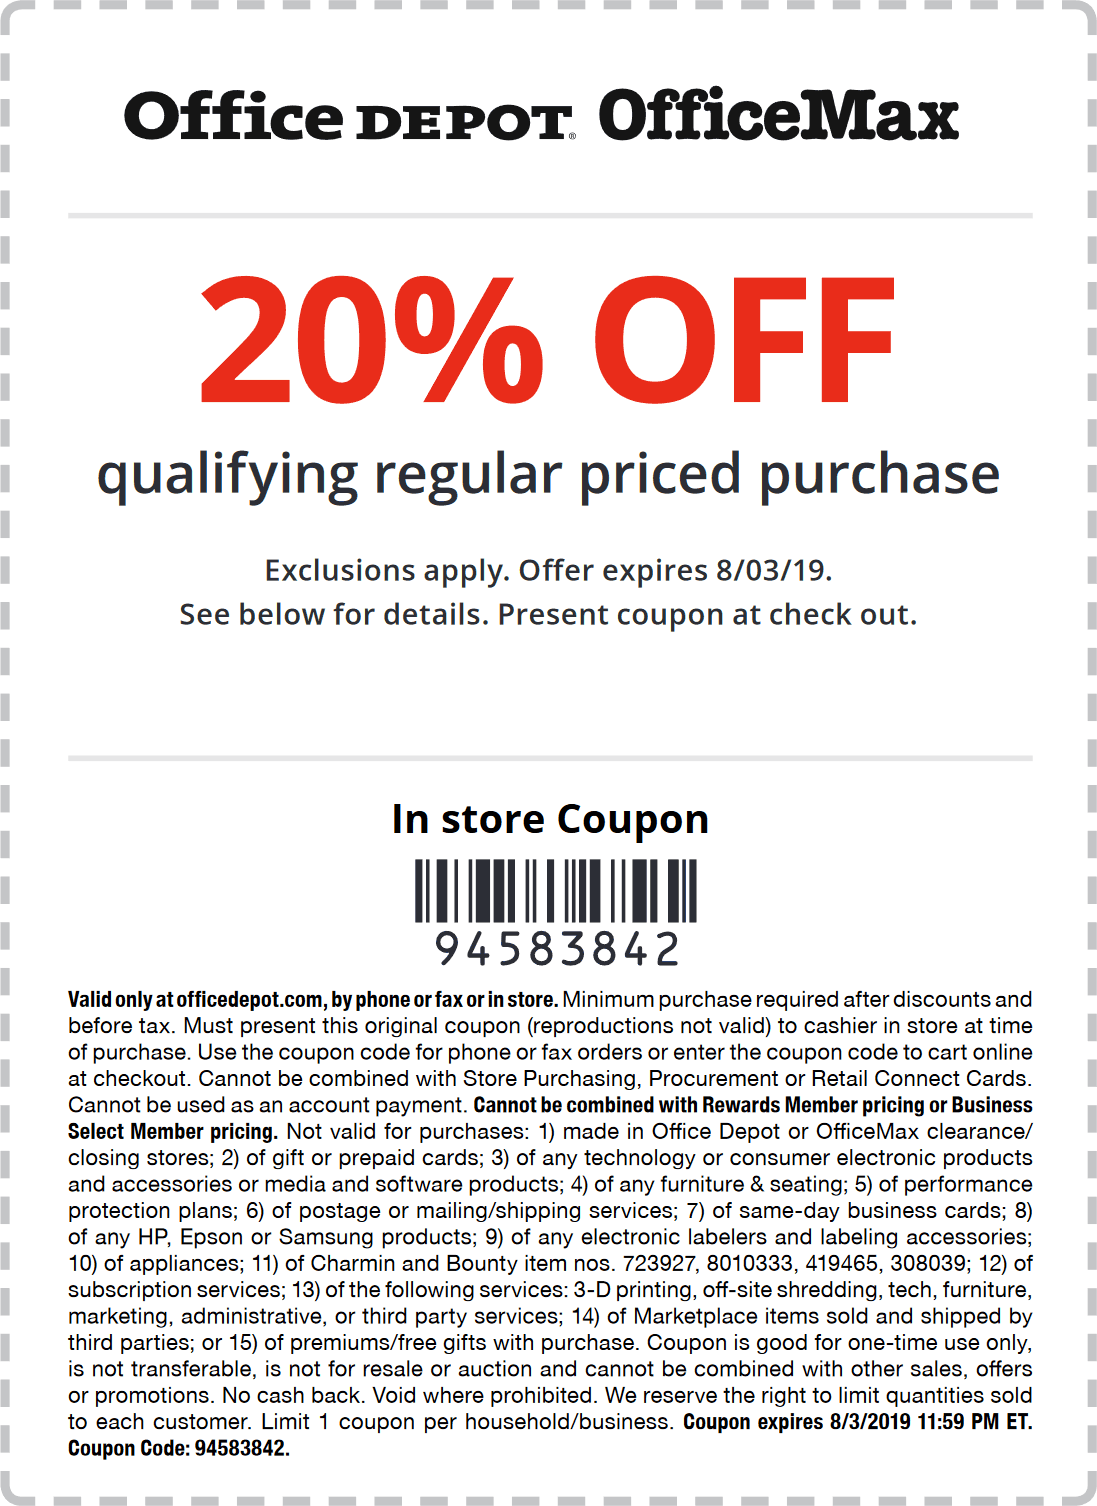 Office Depot Coupon August 2019 20% off at Office Depot & OfficeMax, or online via promo code 94583842